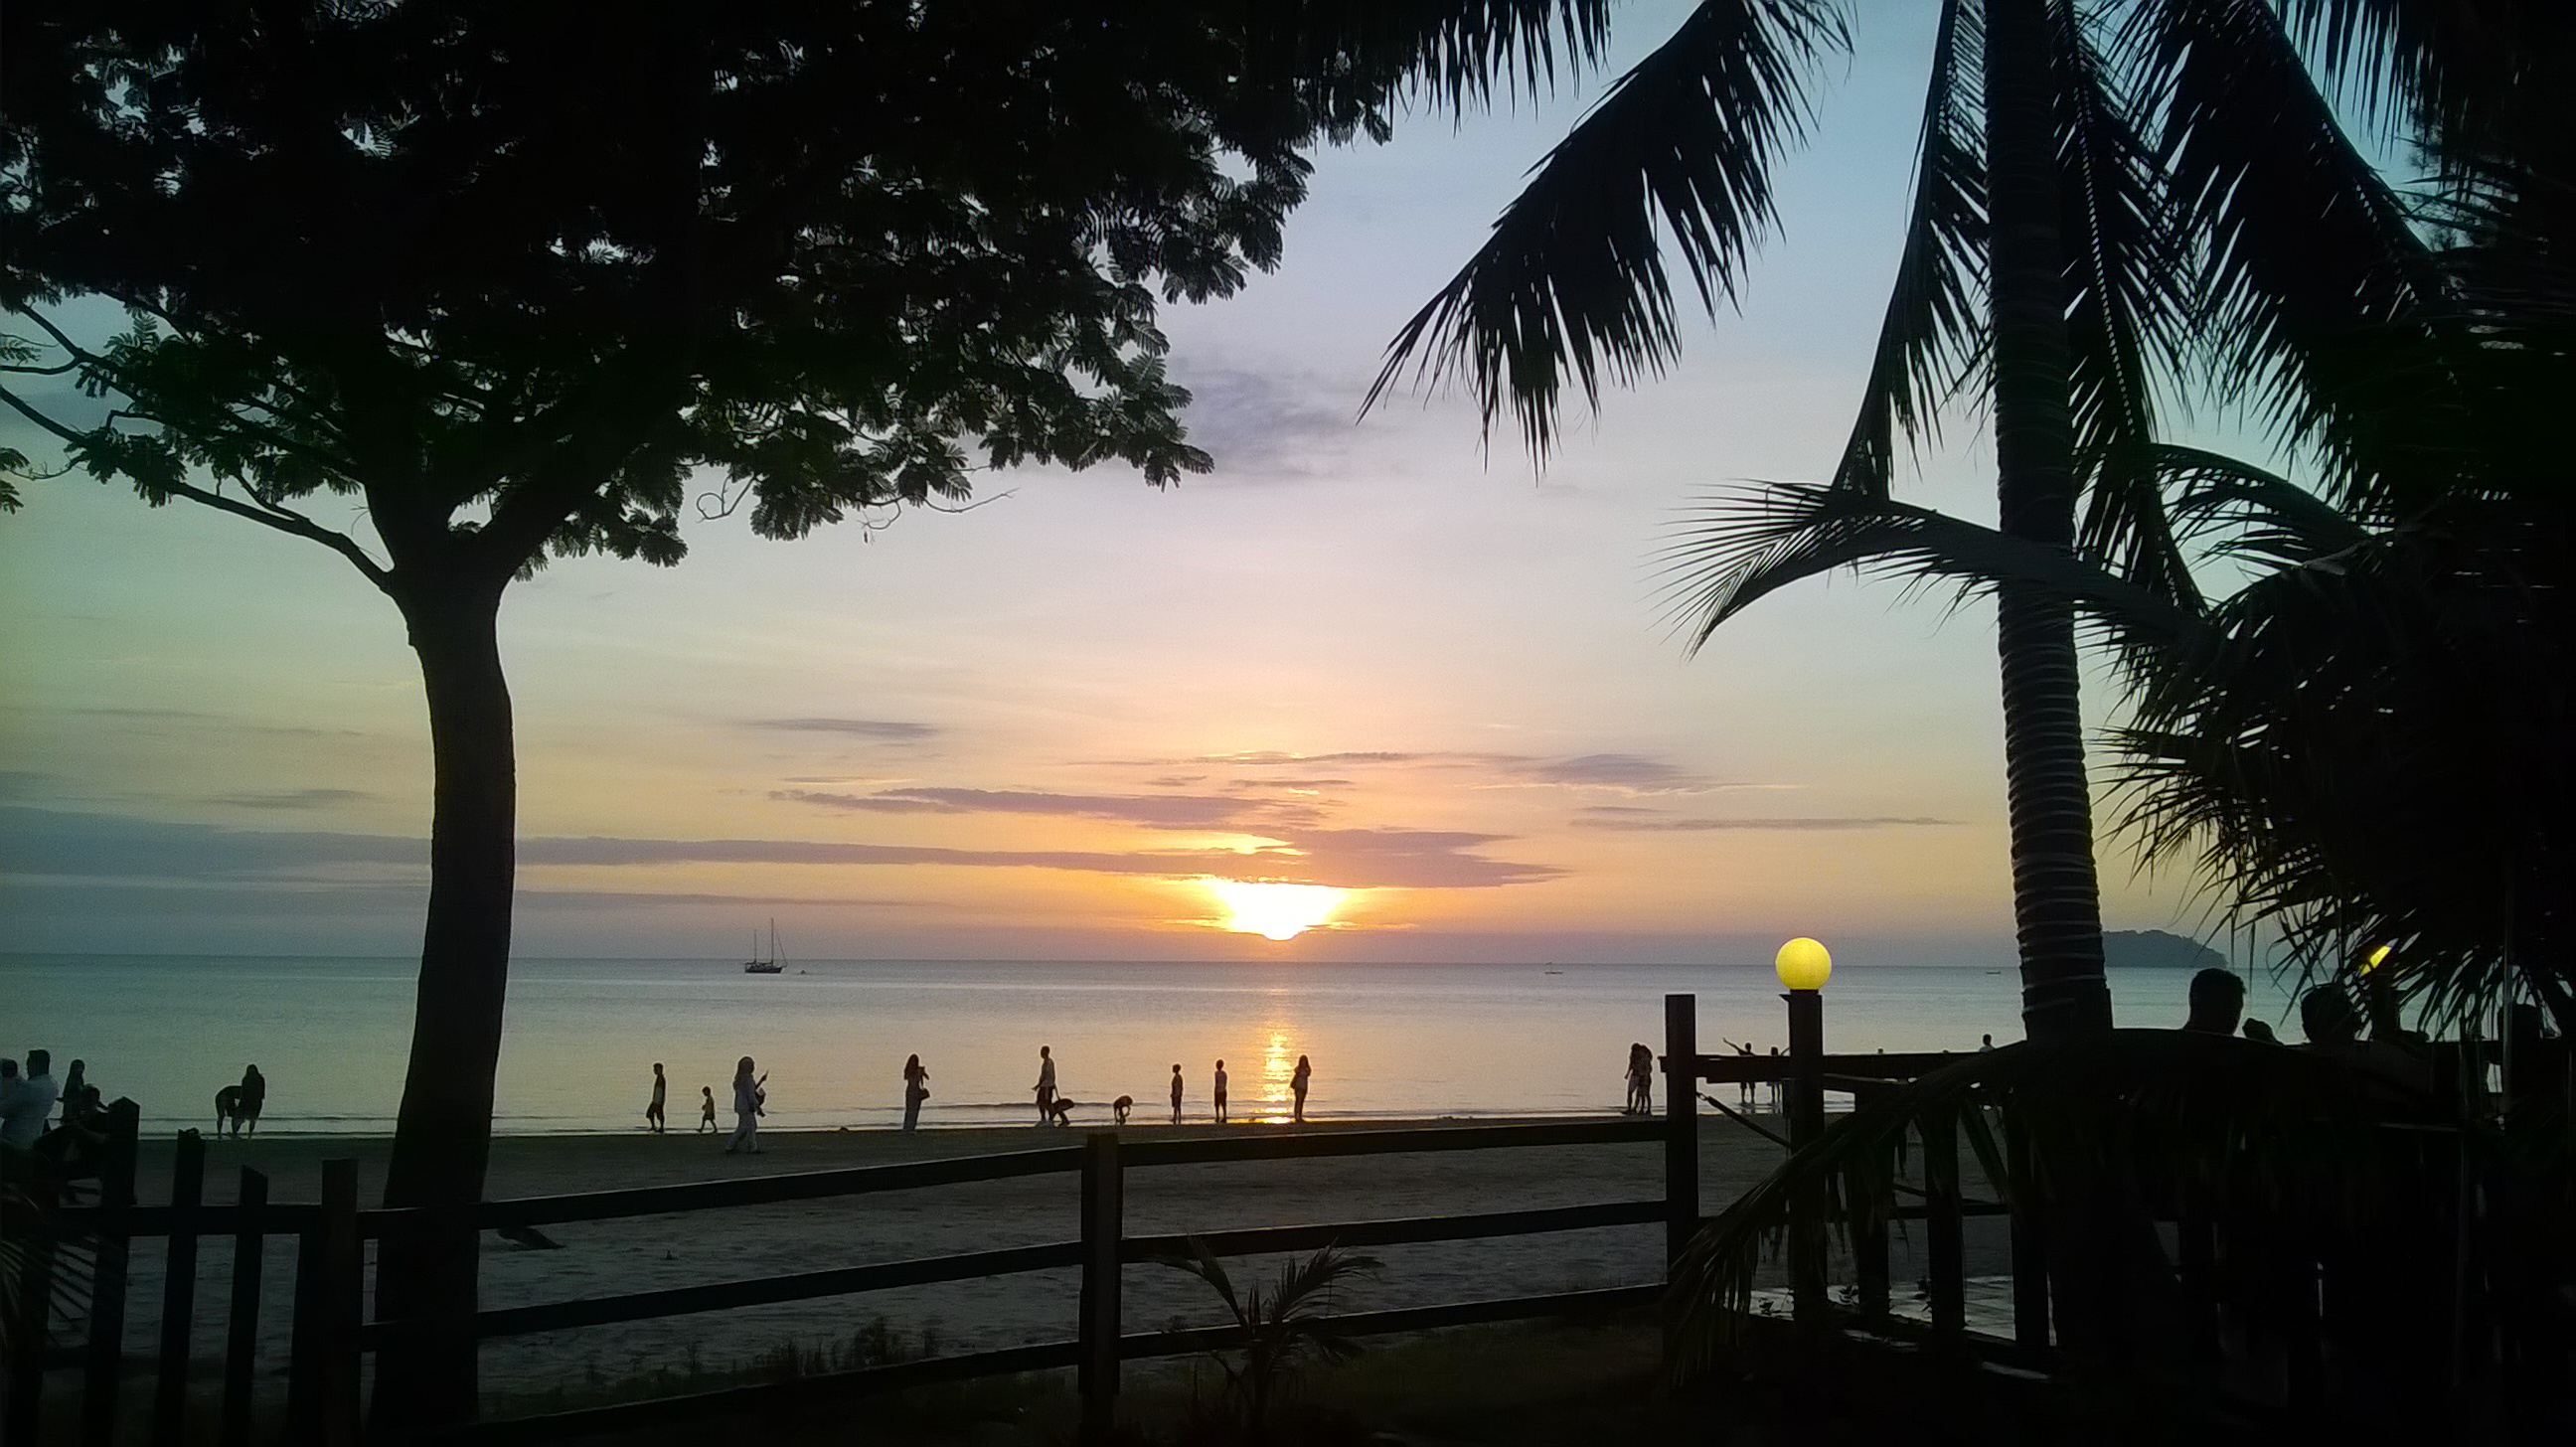 Sunset viewed from Tanjung Aru Kota Kinabalu